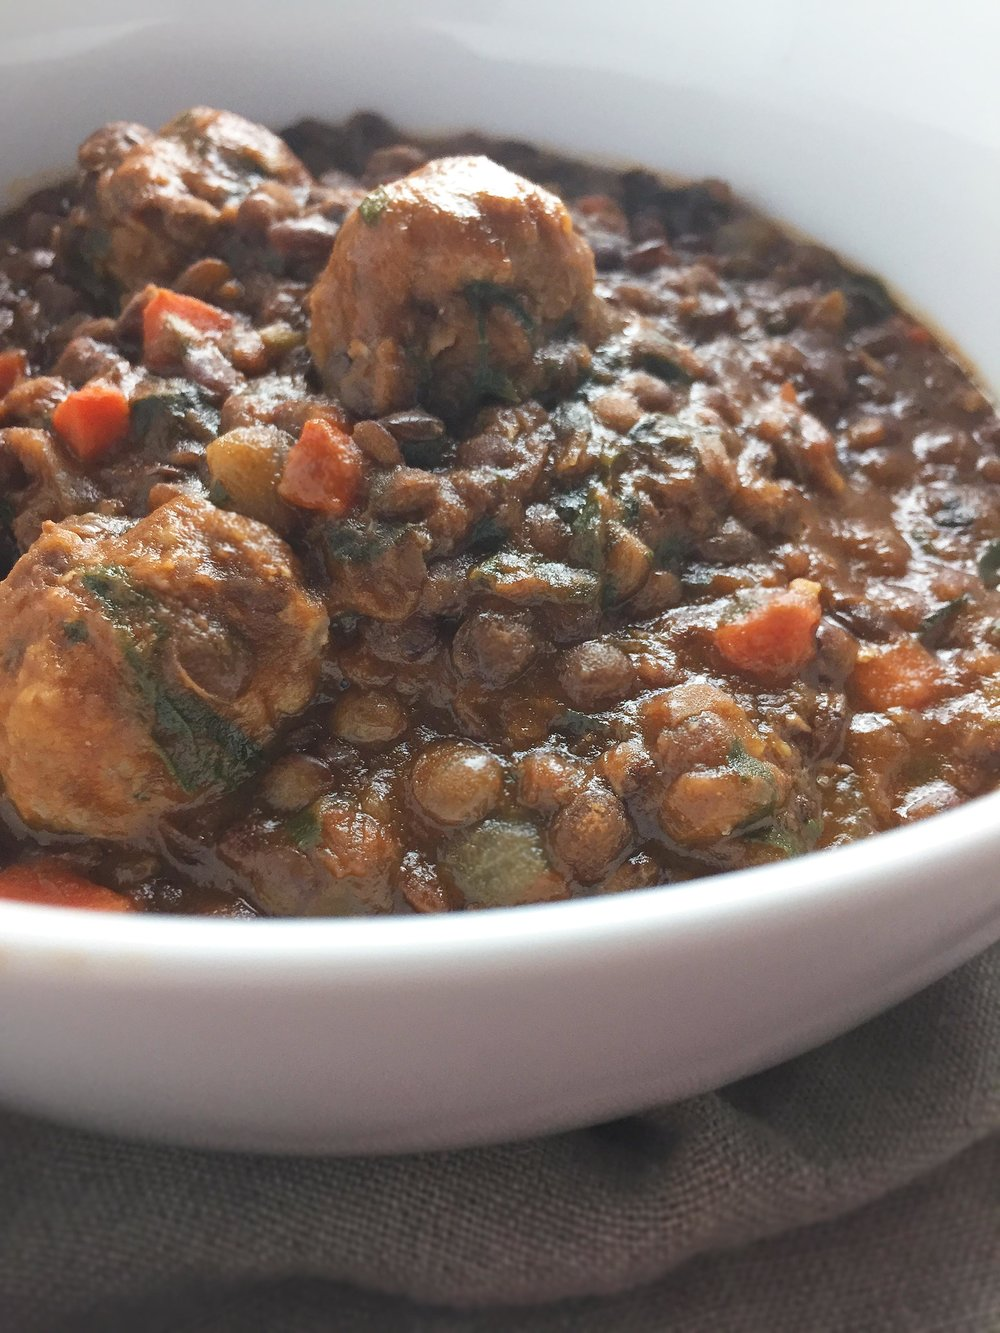 lentil_soup_with_sausage_meatballs13.jpg